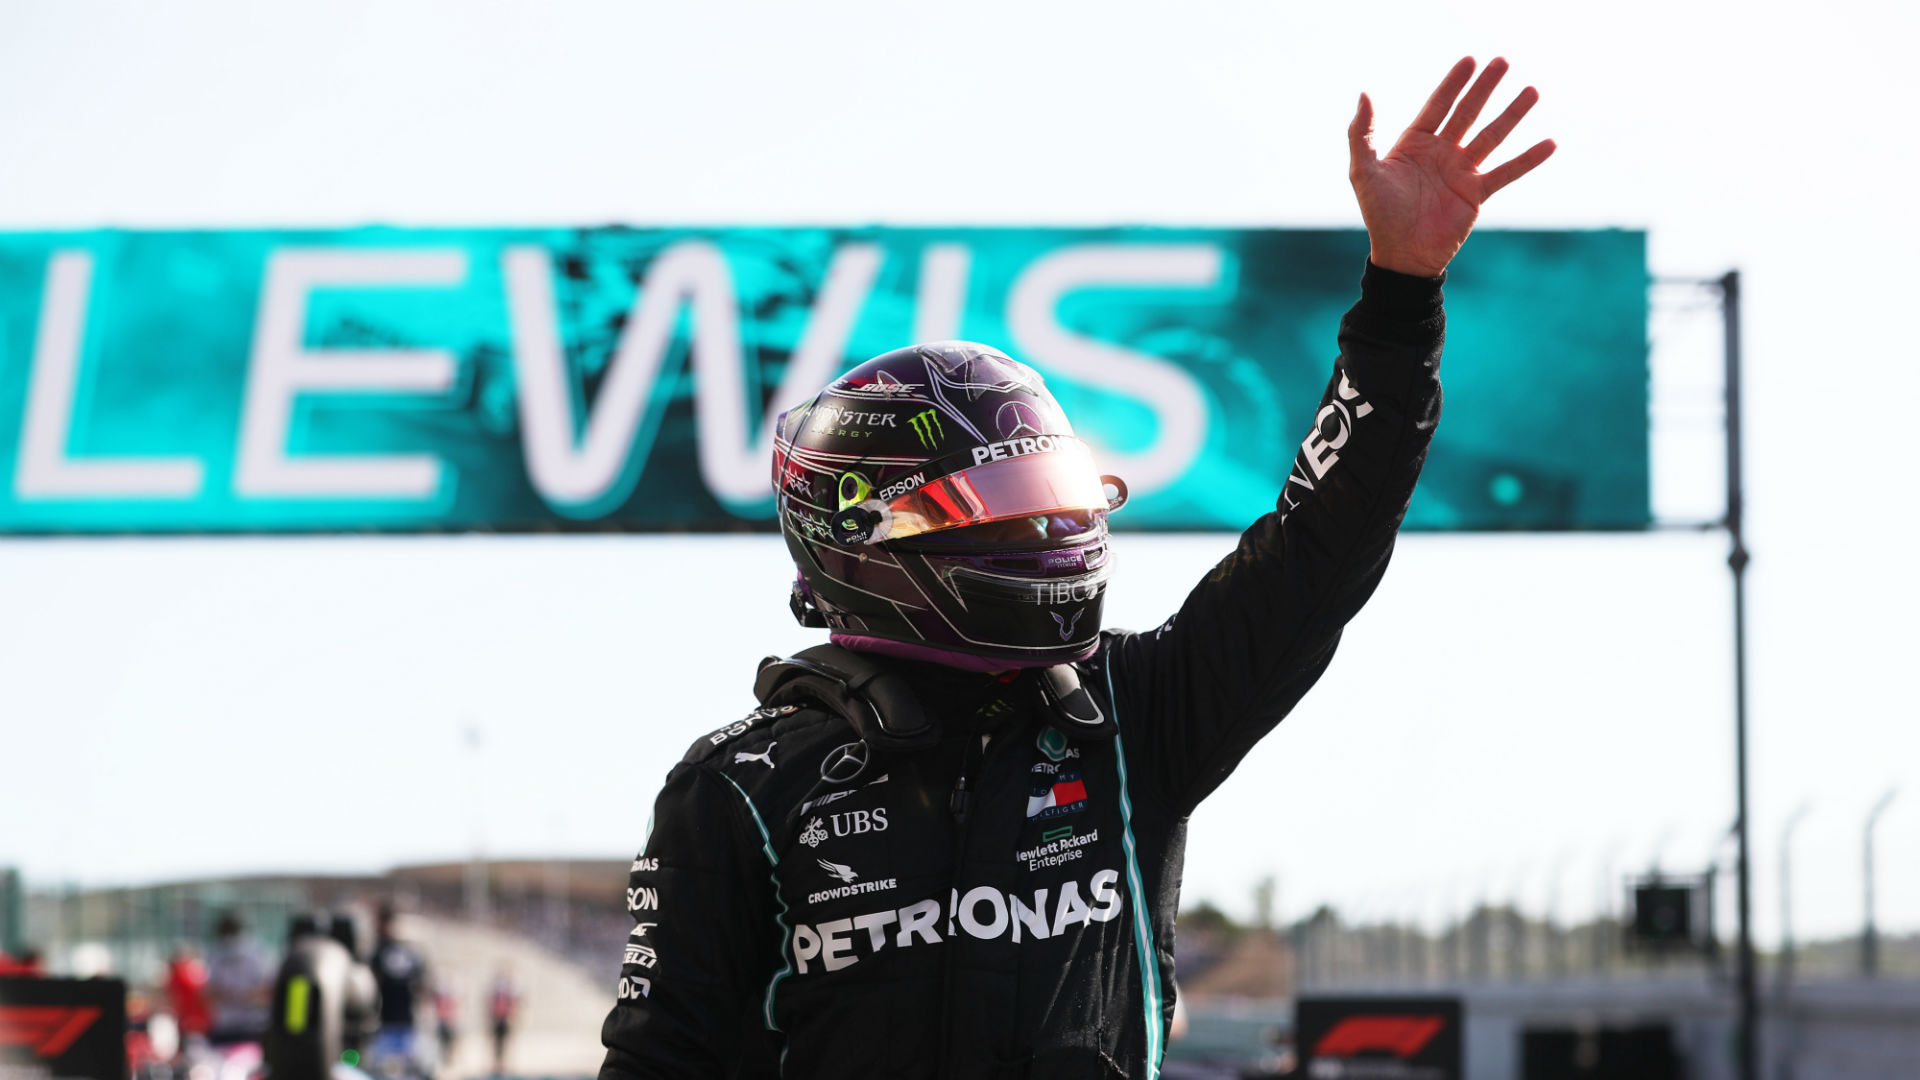 F1 2020: Hamilton to begin quest for record-breaking 92nd win from pole